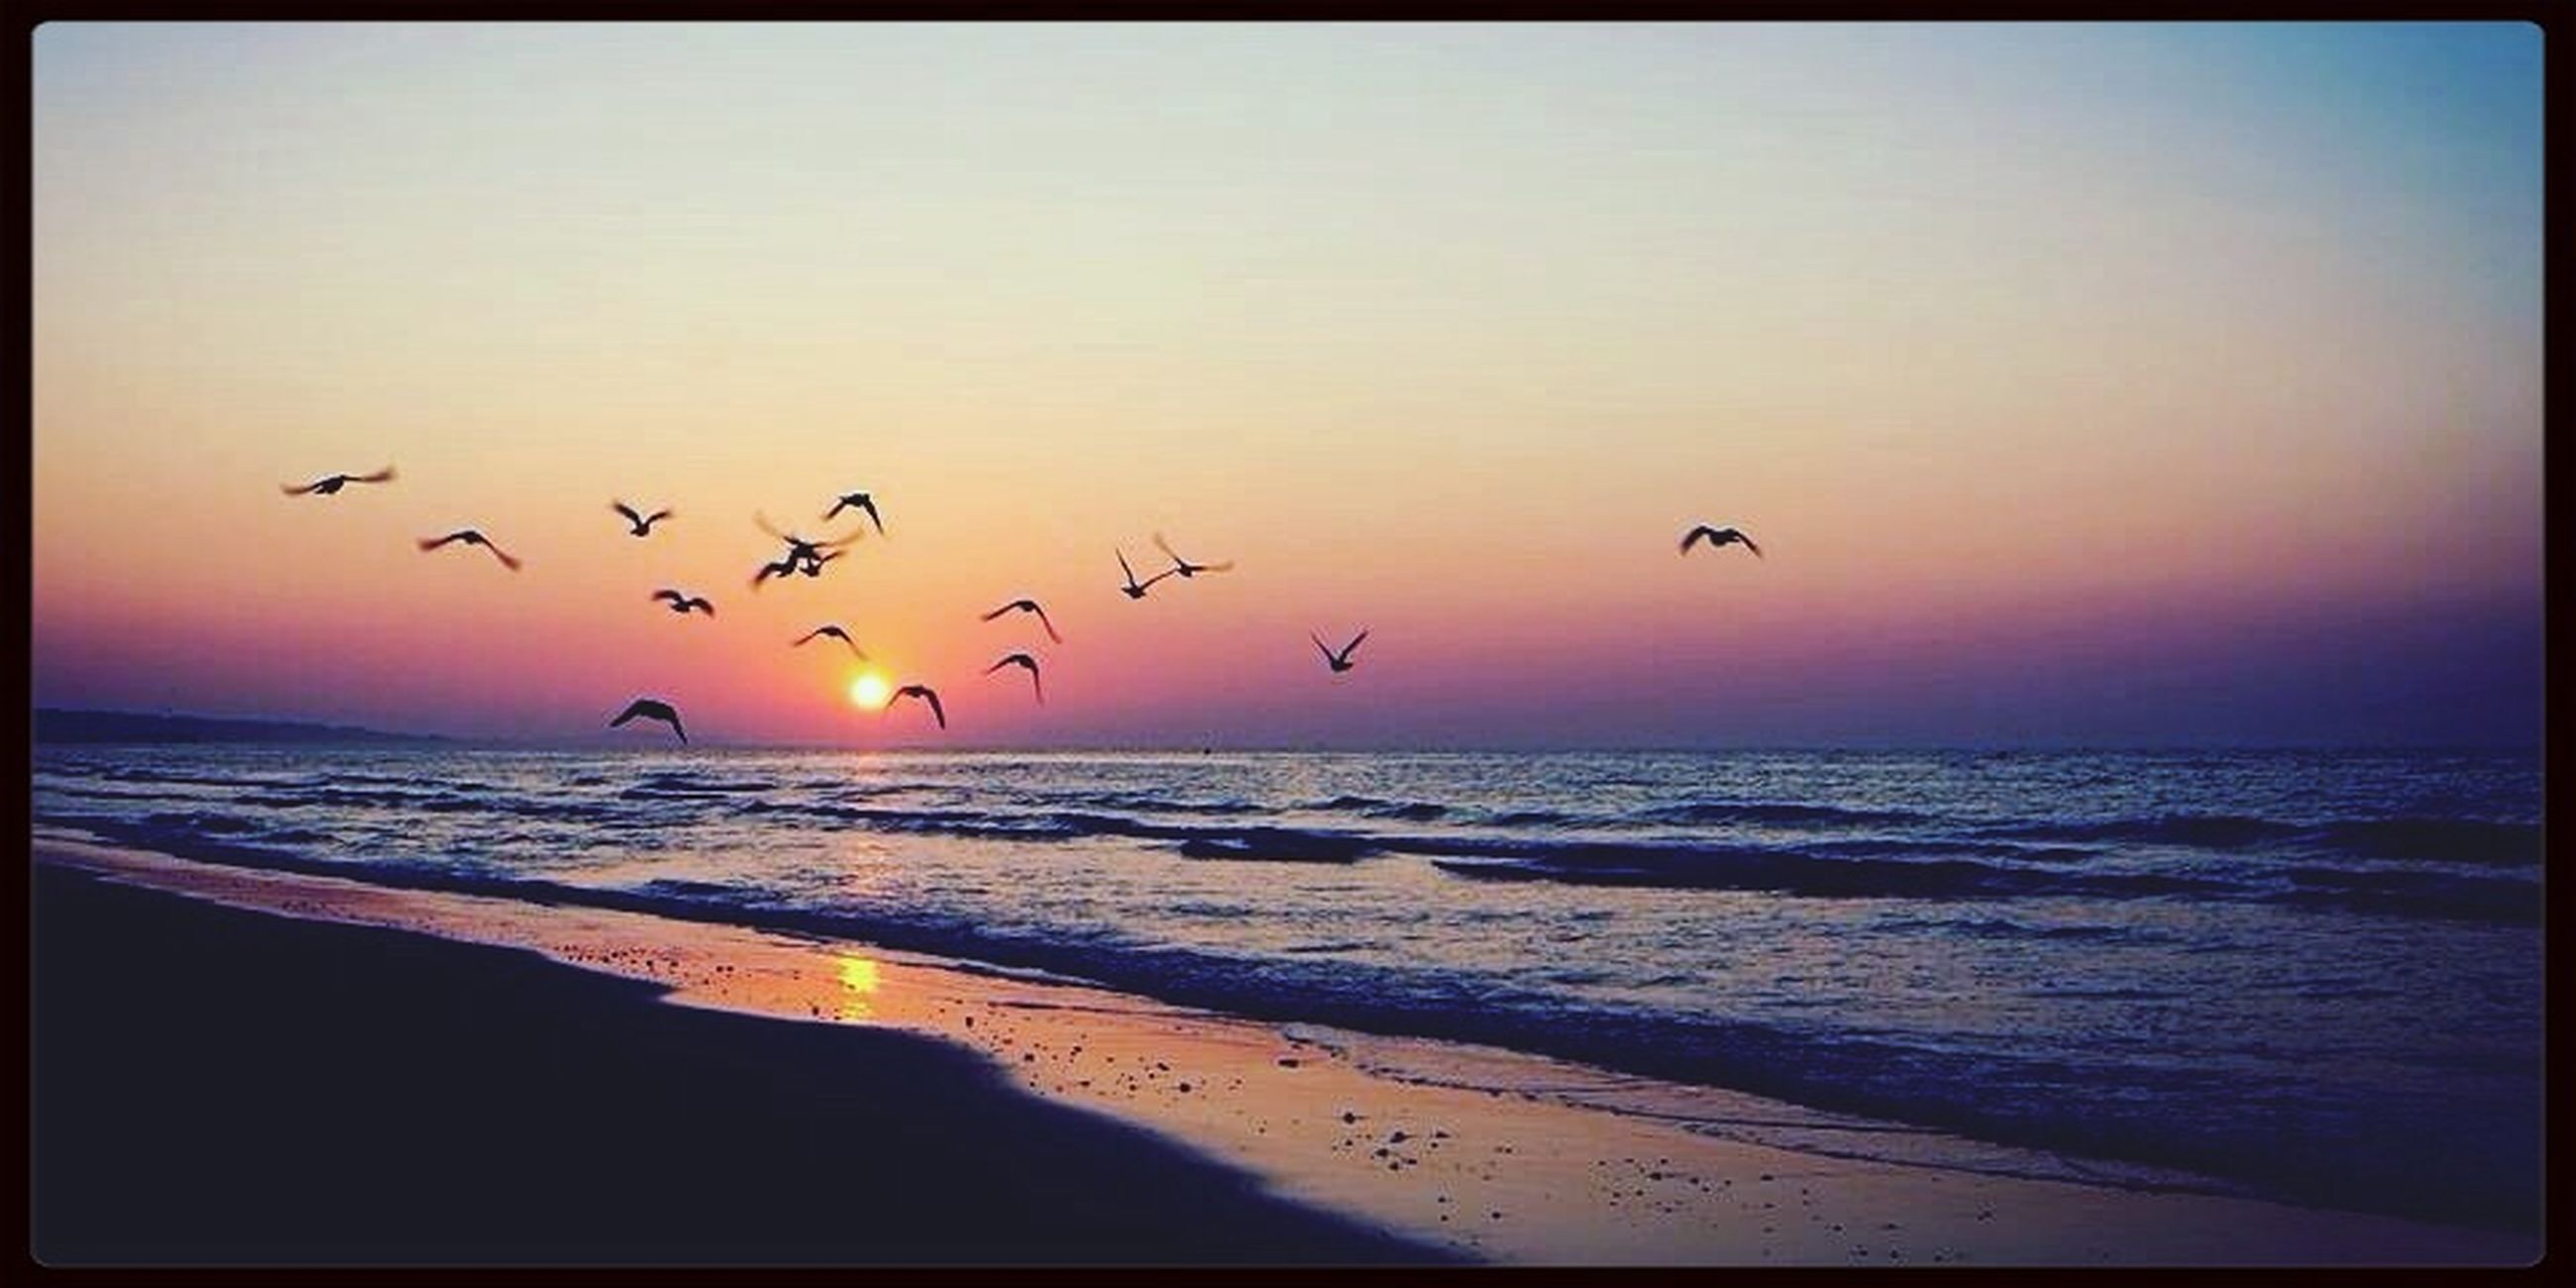 bird, flying, animal themes, sea, animals in the wild, wildlife, horizon over water, sunset, water, flock of birds, beach, scenics, beauty in nature, sky, transfer print, nature, tranquil scene, silhouette, shore